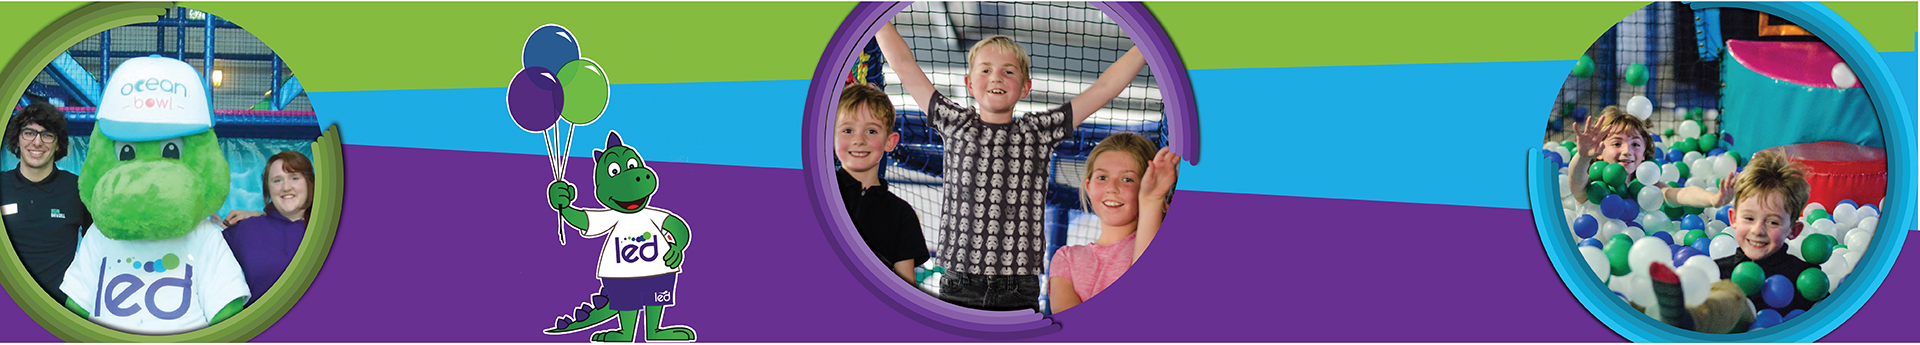 After school club at Ocean Exmouth